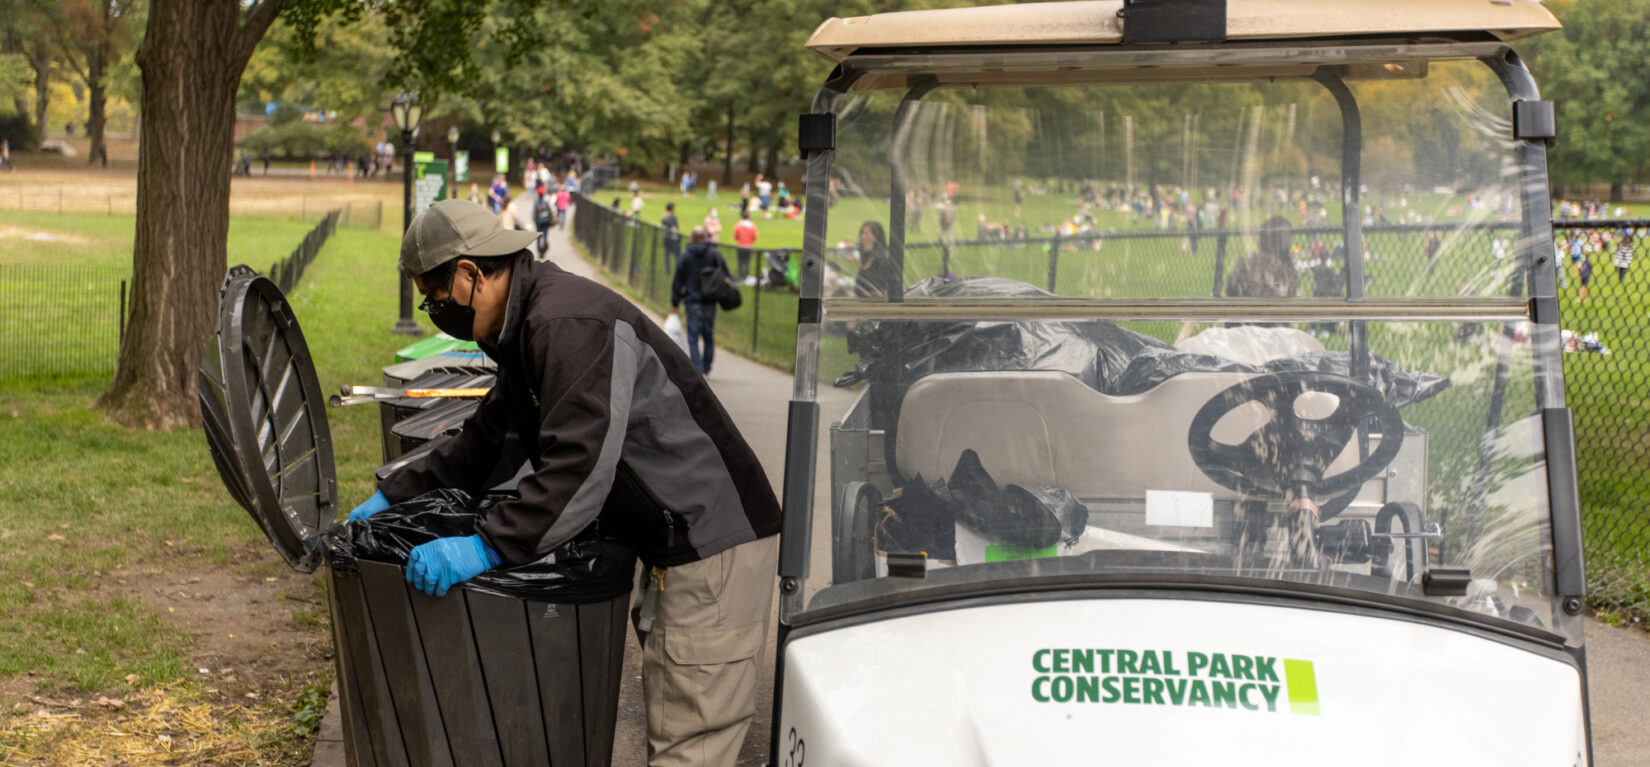 Staff member Danilo Maturan uses an electric cart as part of his trash maintenance routine.